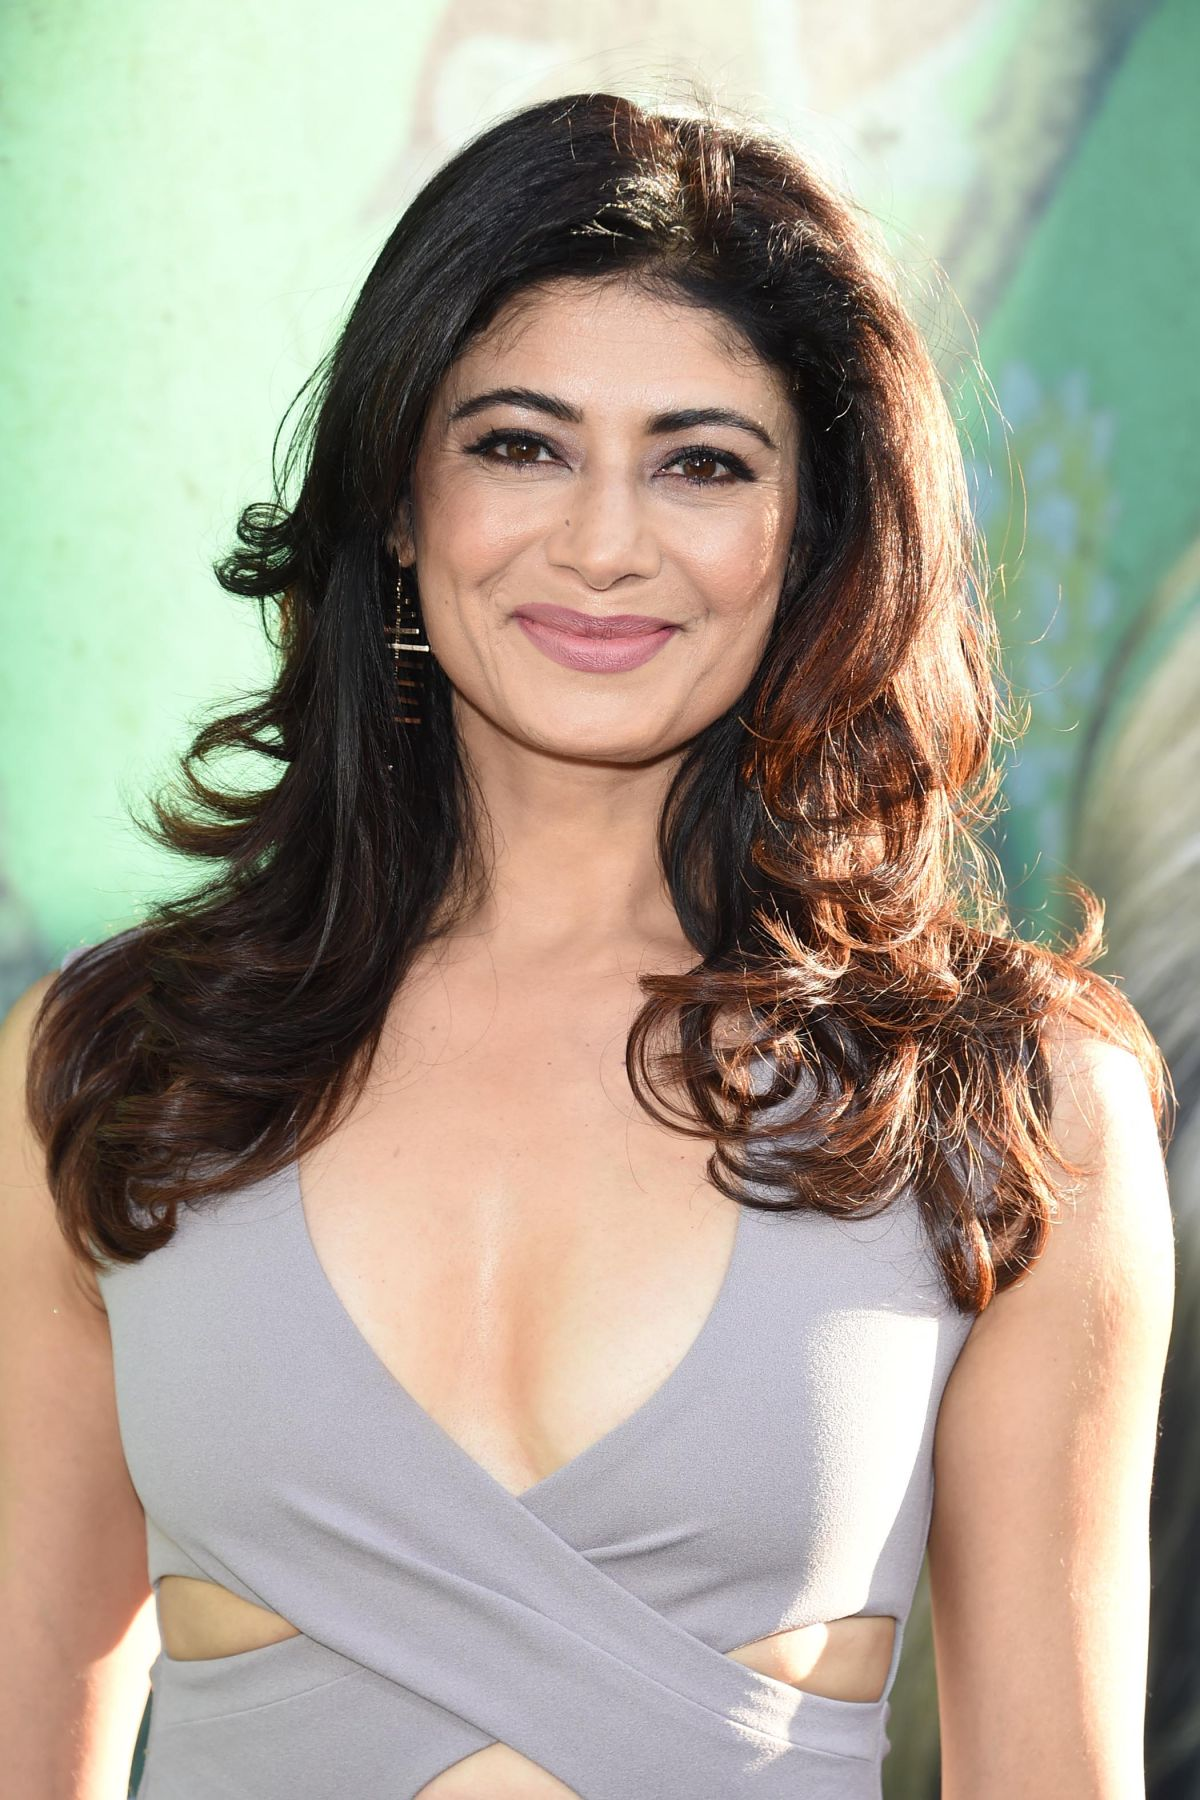 Discussion on this topic: Vicki Peters, pooja-batra/